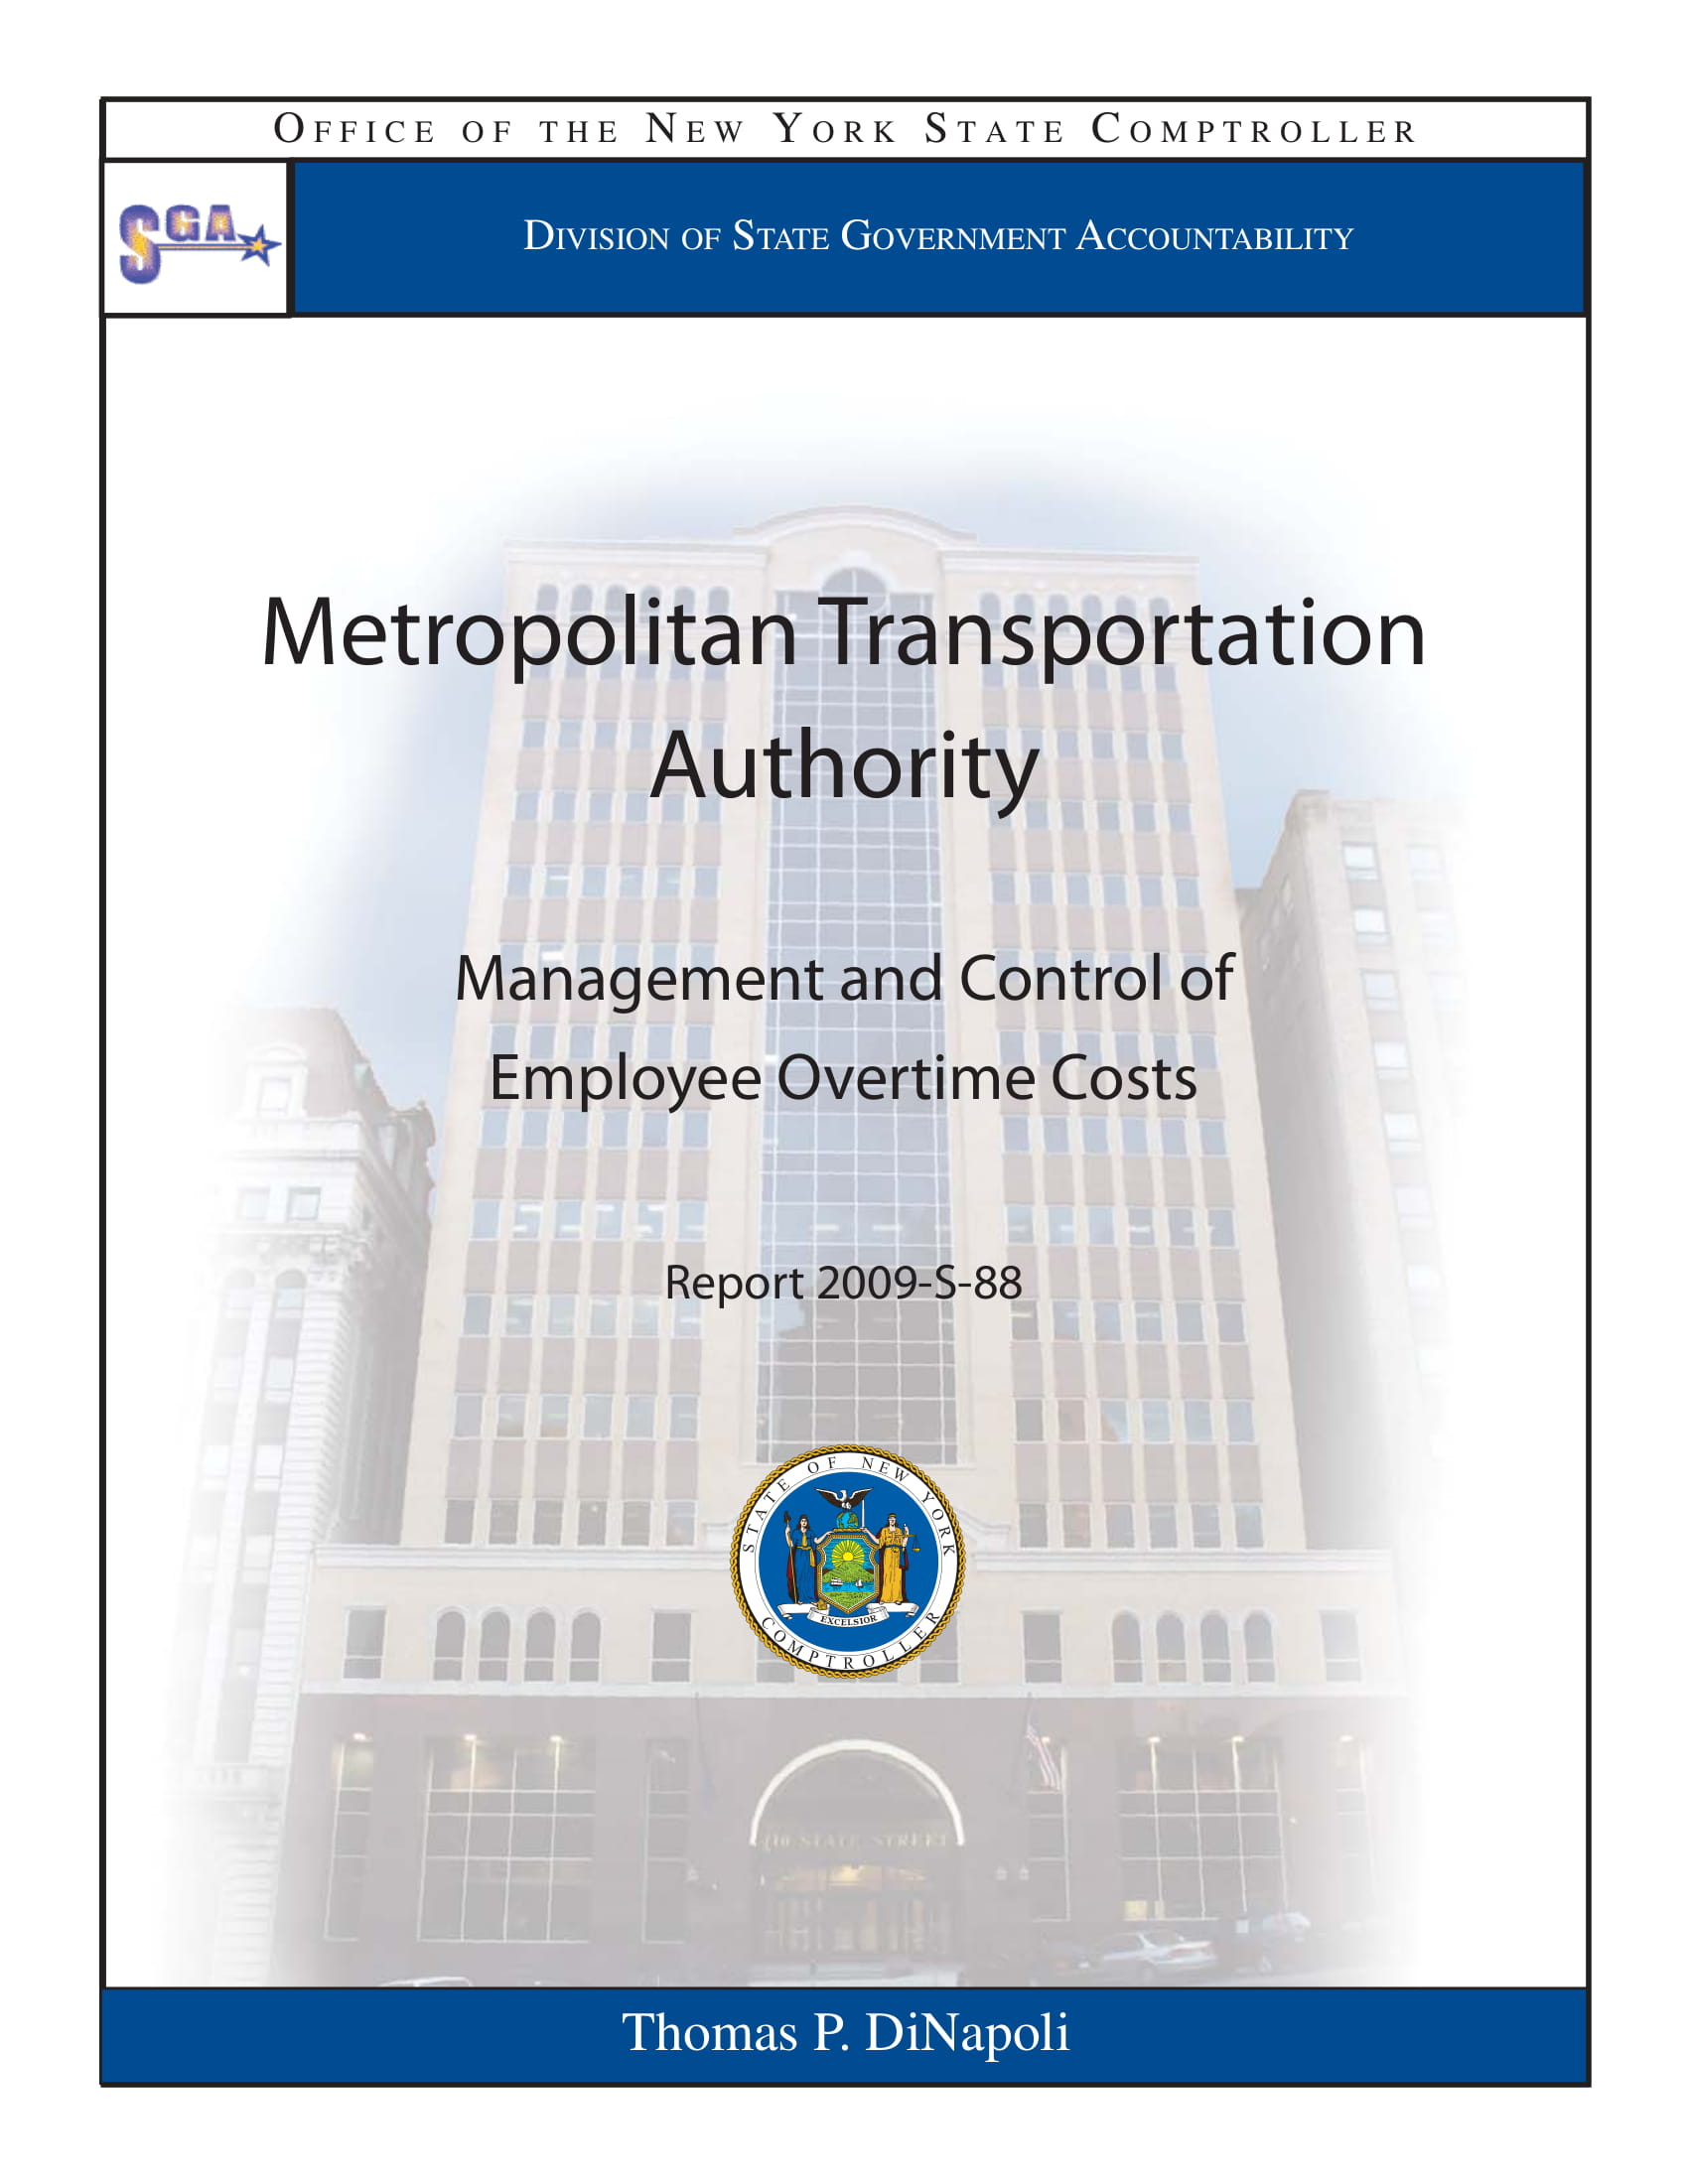 management and control of employee overtime costs report example